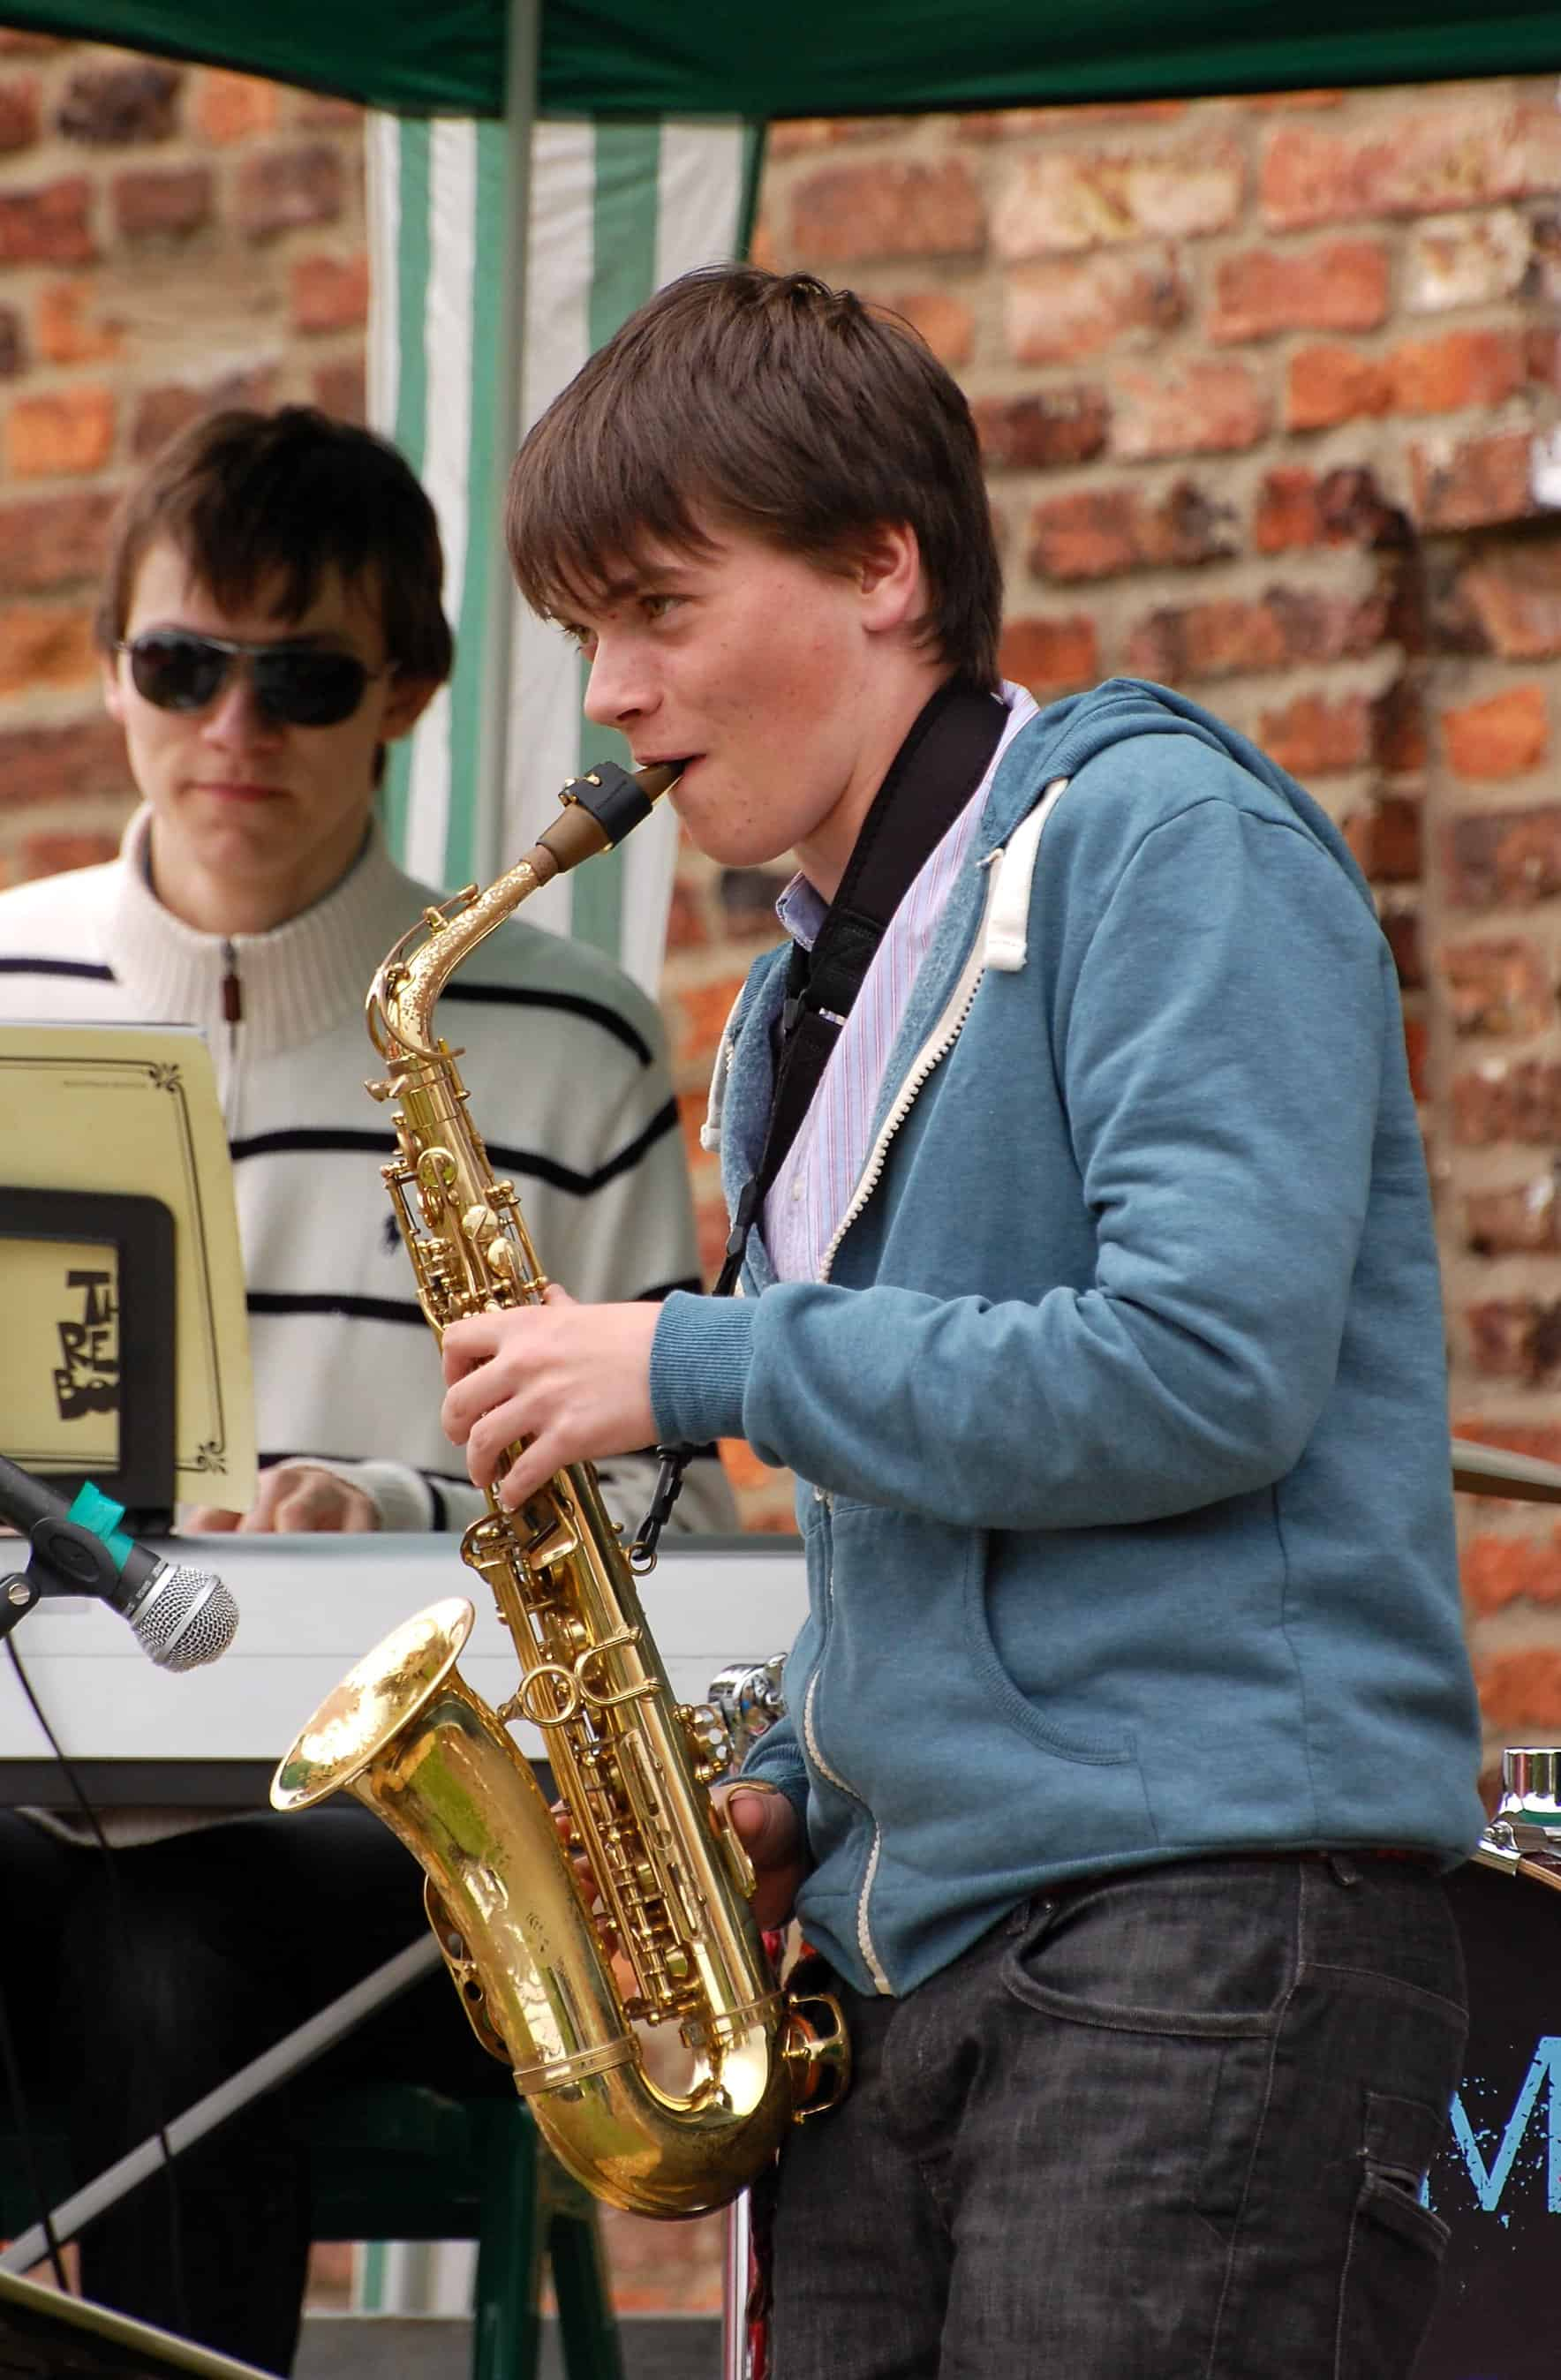 """Avoiding That """"Pain in the Neck""""; Addressing Posture and Neckstraps for Saxophonists"""